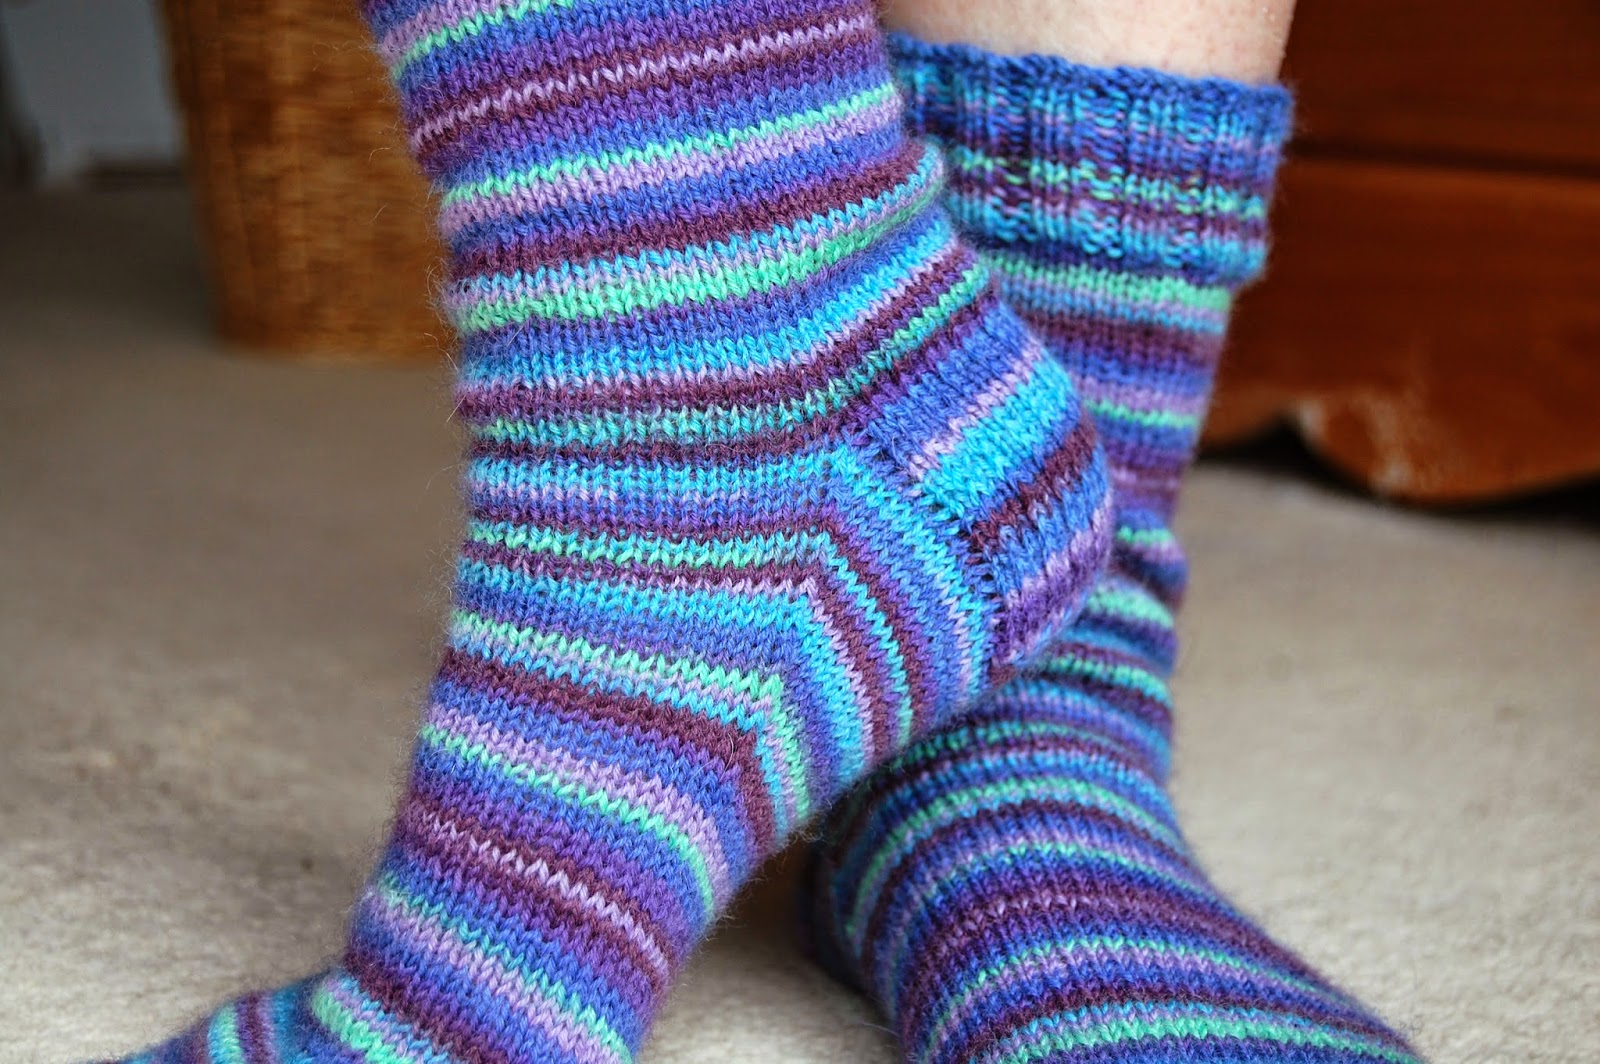 Sock Pattern Knitting : Winwick Mum: Basic 4ply sock pattern and tutorial - easy beginner sock knitting!